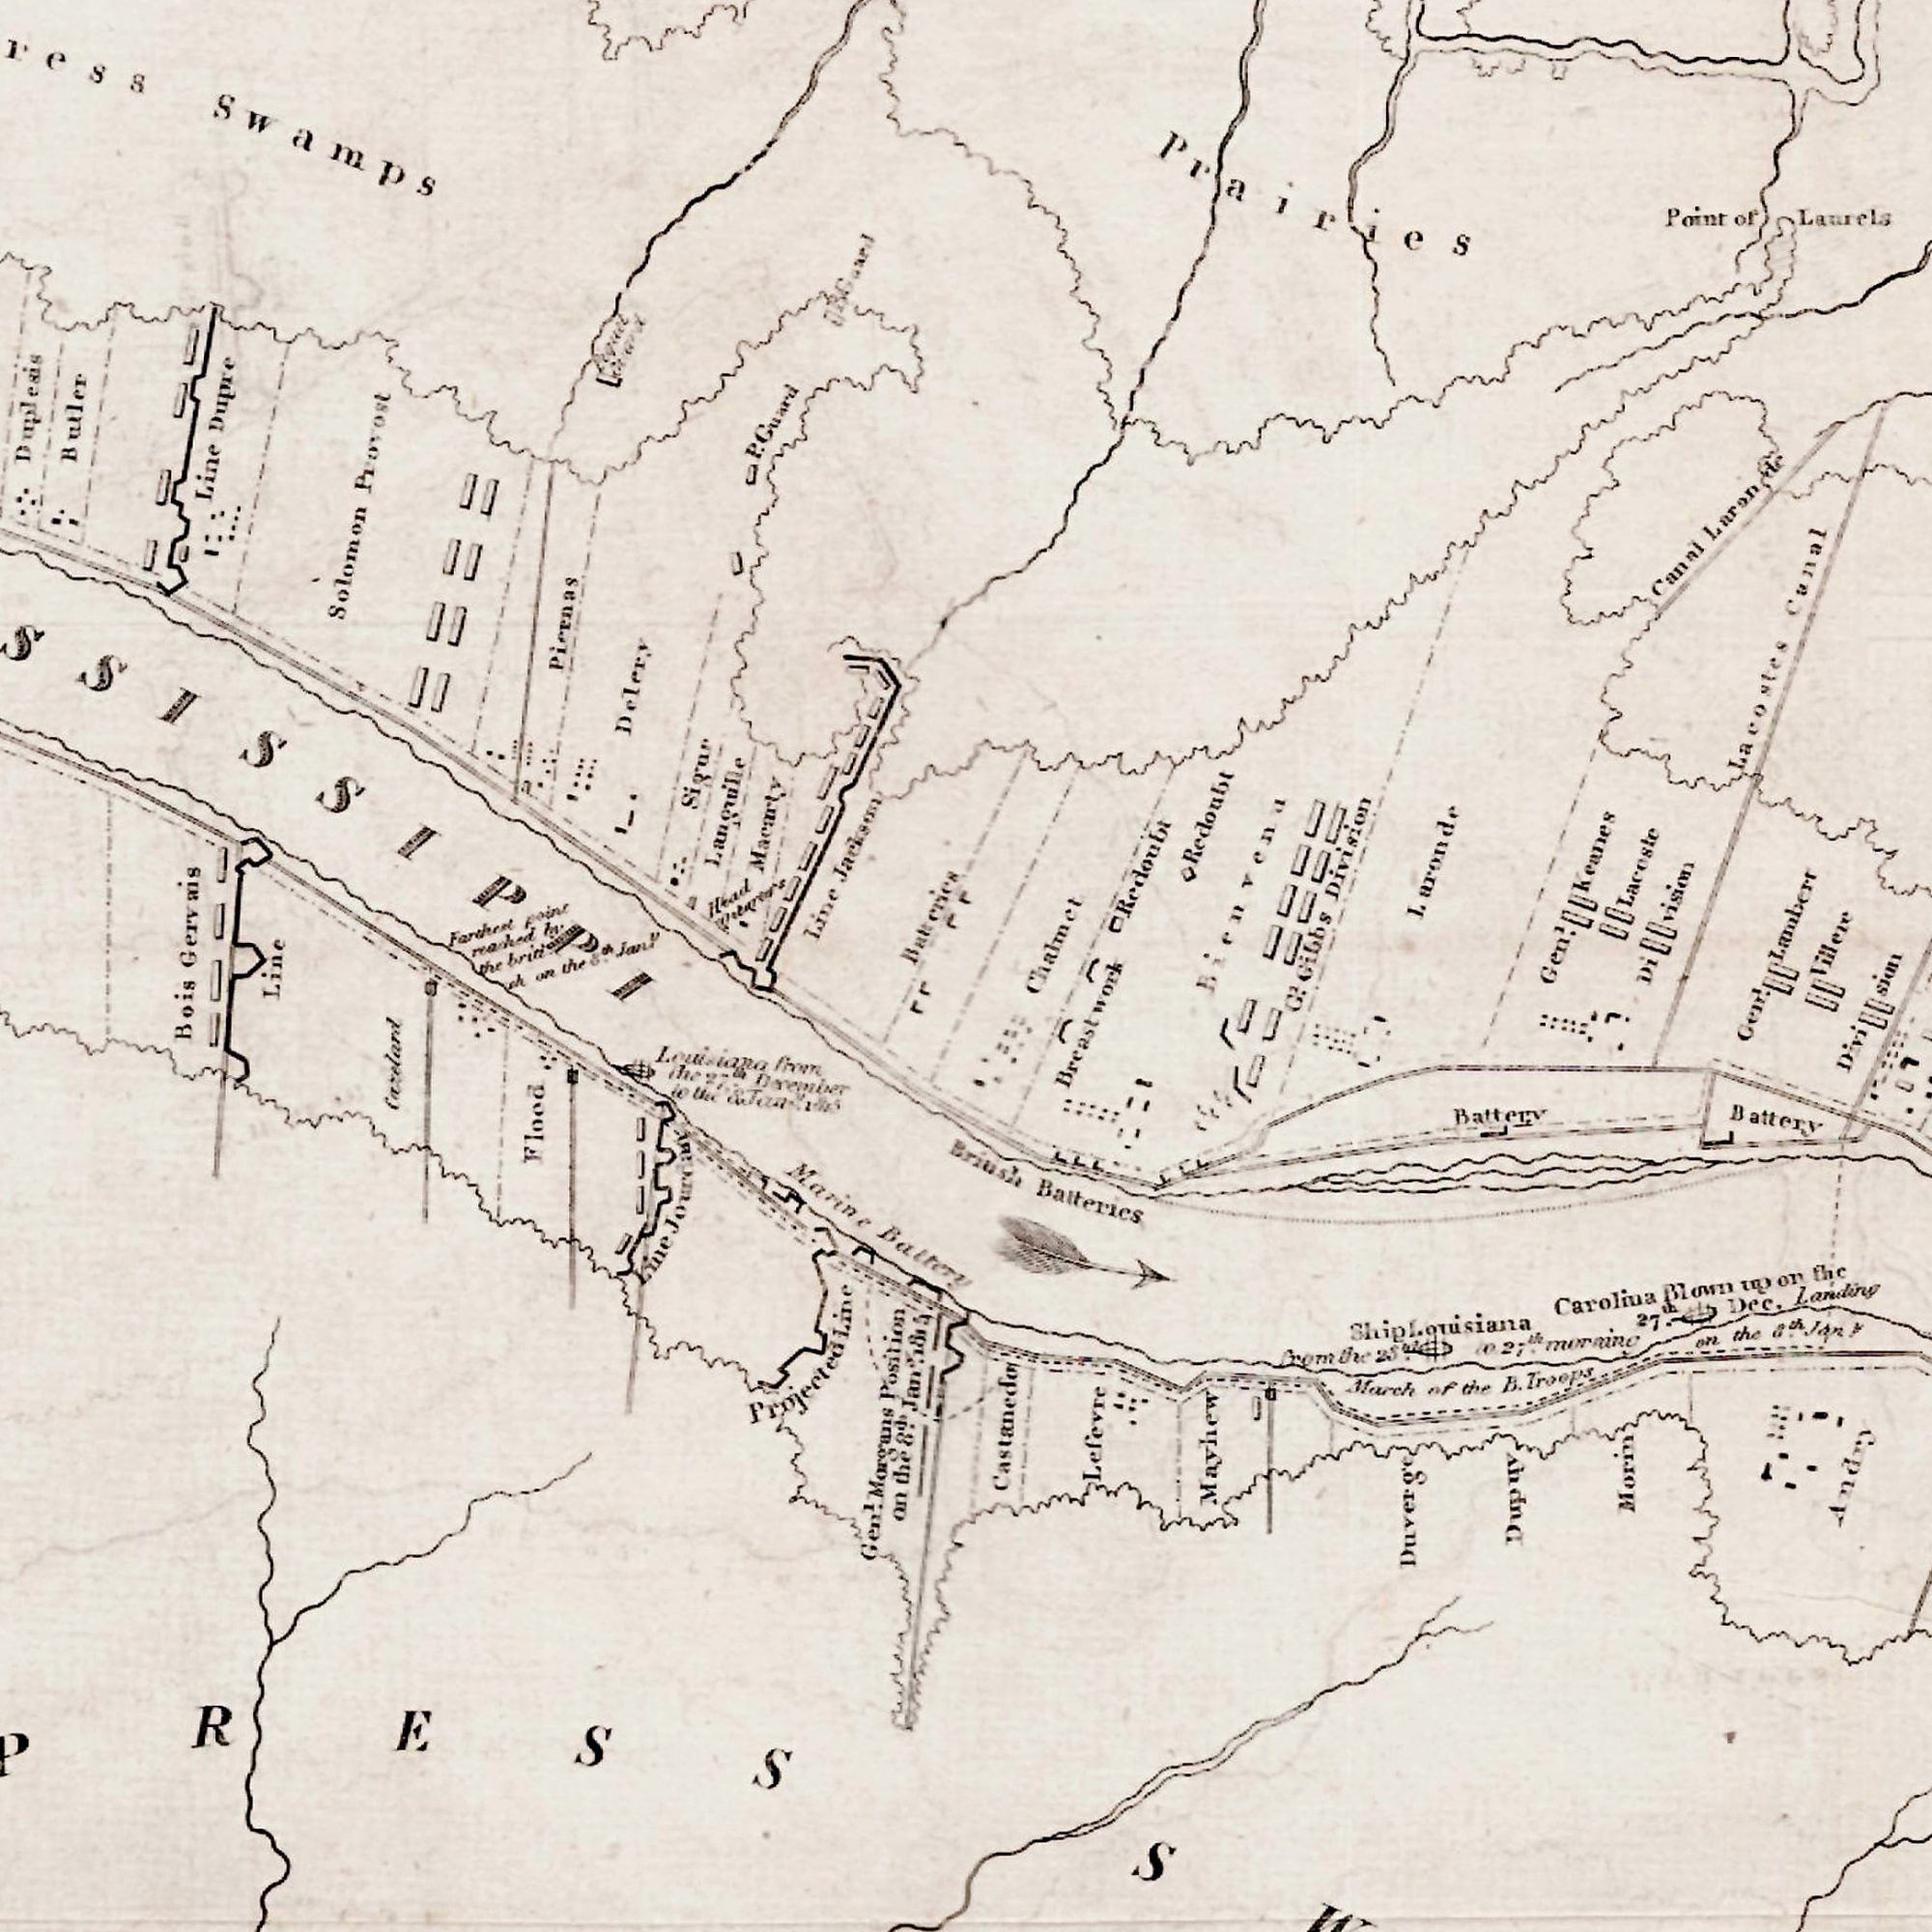 The Battle of New Orleans Rare Antique Maps